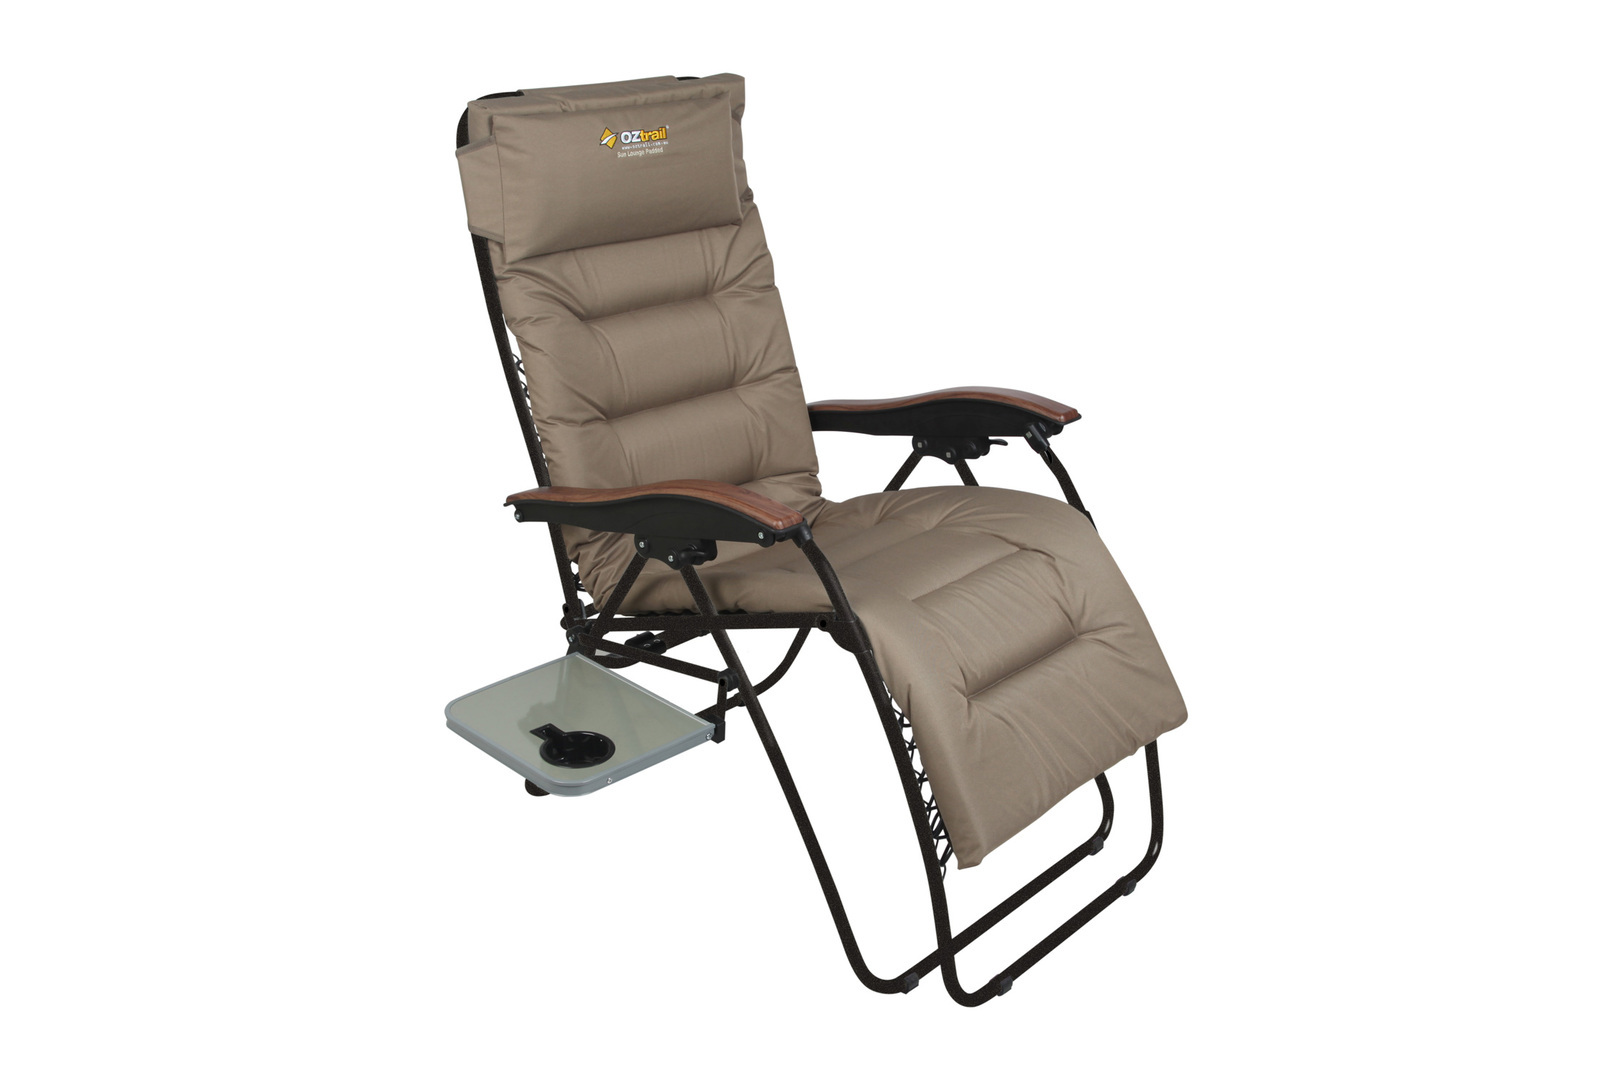 folding chair with side table hanging stand diy oztrail sun lounge brampton - tentworld